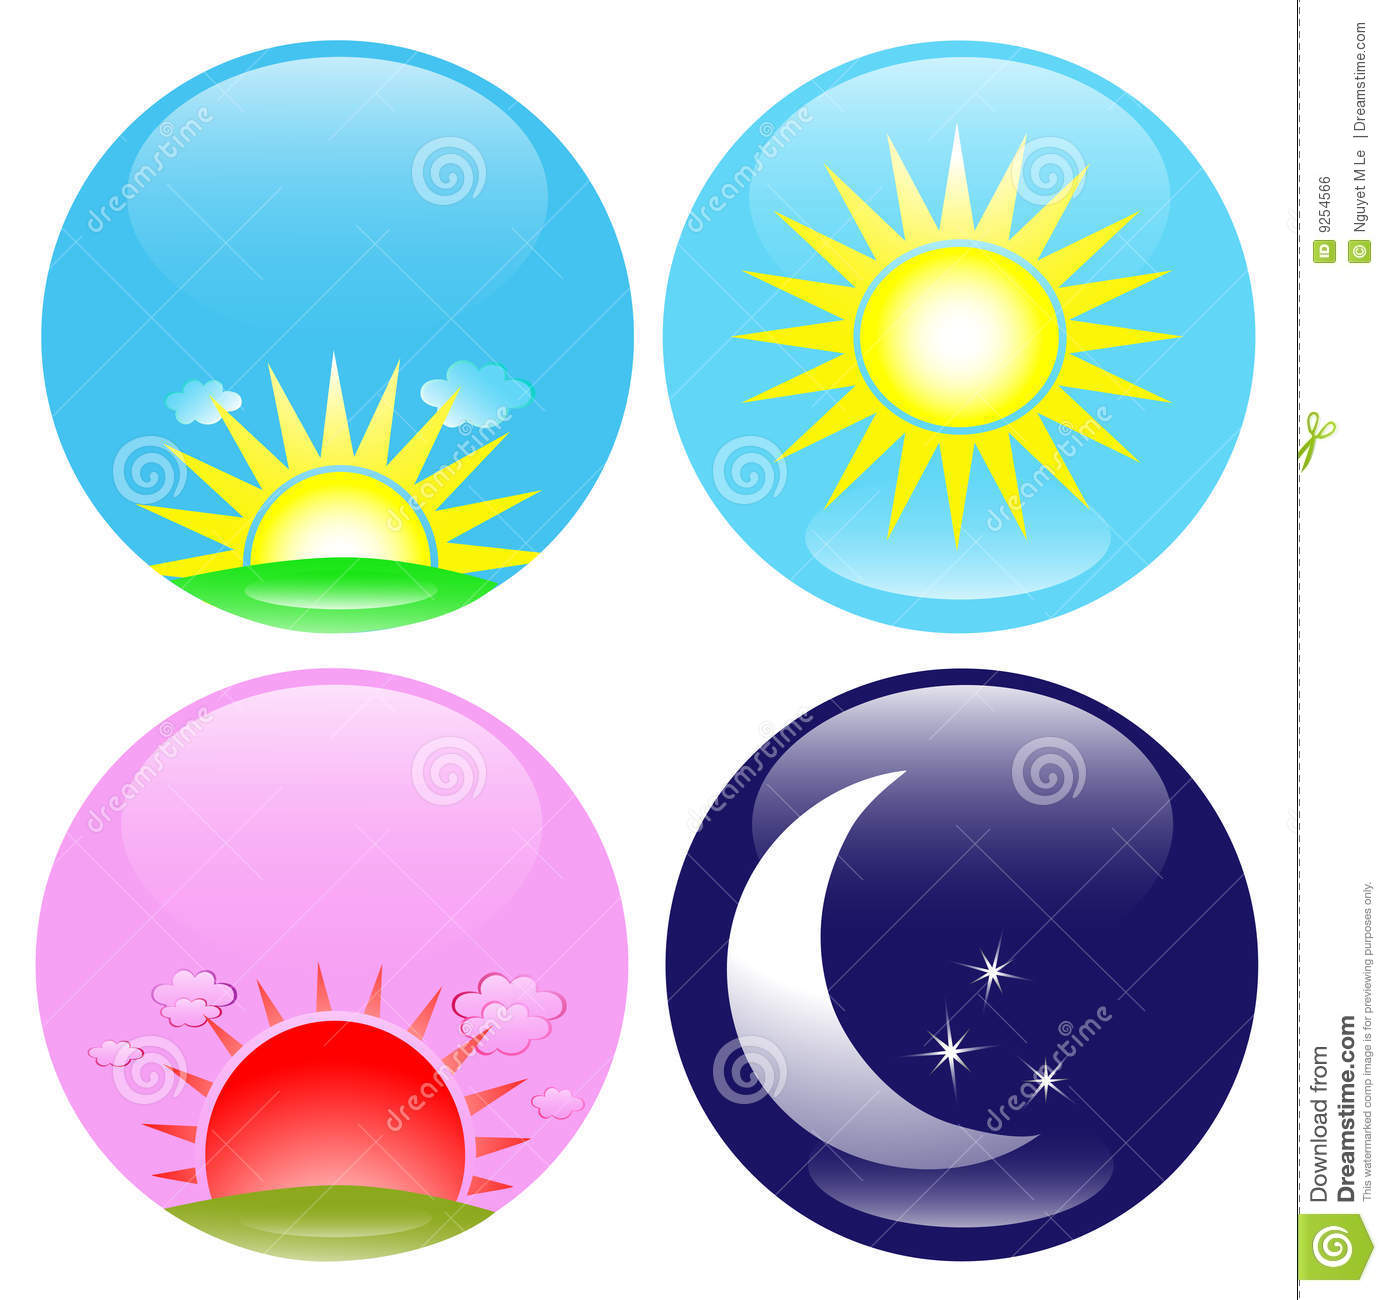 Day And Night Icons Set Royalty Free Stock Image